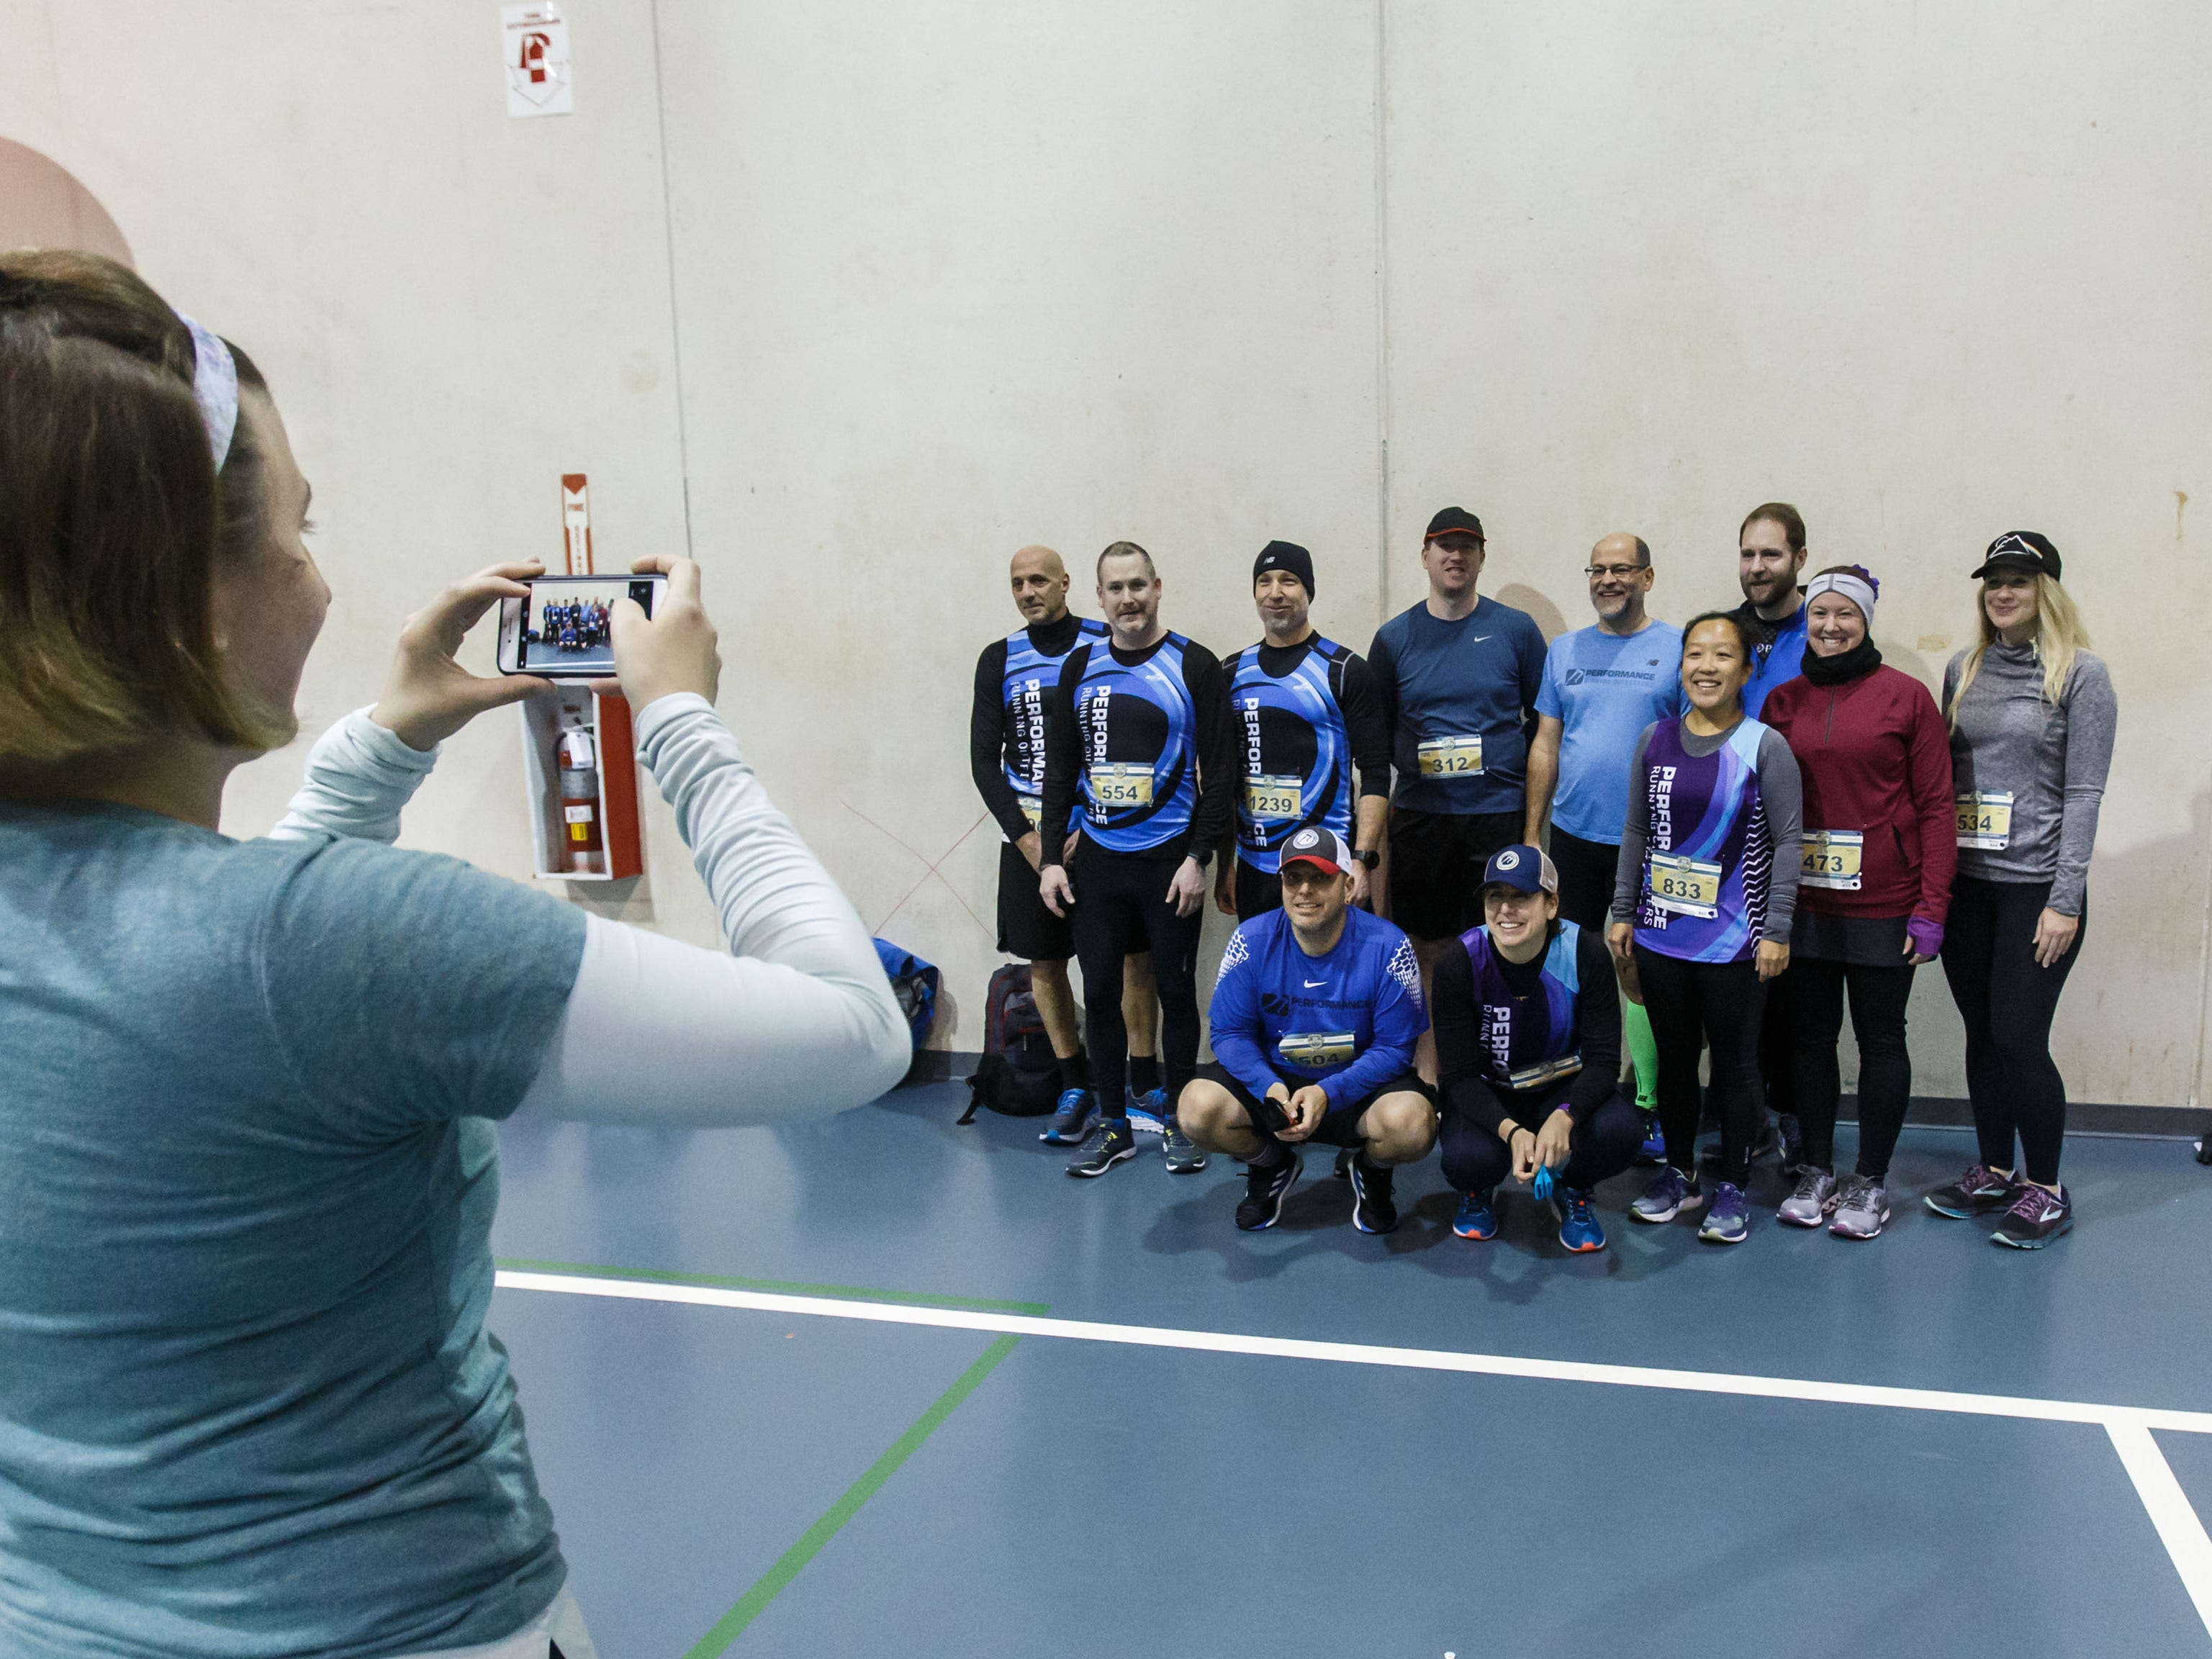 Alison Newcomb of Franklin snaps a photo of her teammates from Performance Running Outfitters prior to the 14th annual Run Into the New Year hosted by Lighthouse Events at the Milwaukee County Sports Complex in Franklin on Monday, Dec. 31, 2018.